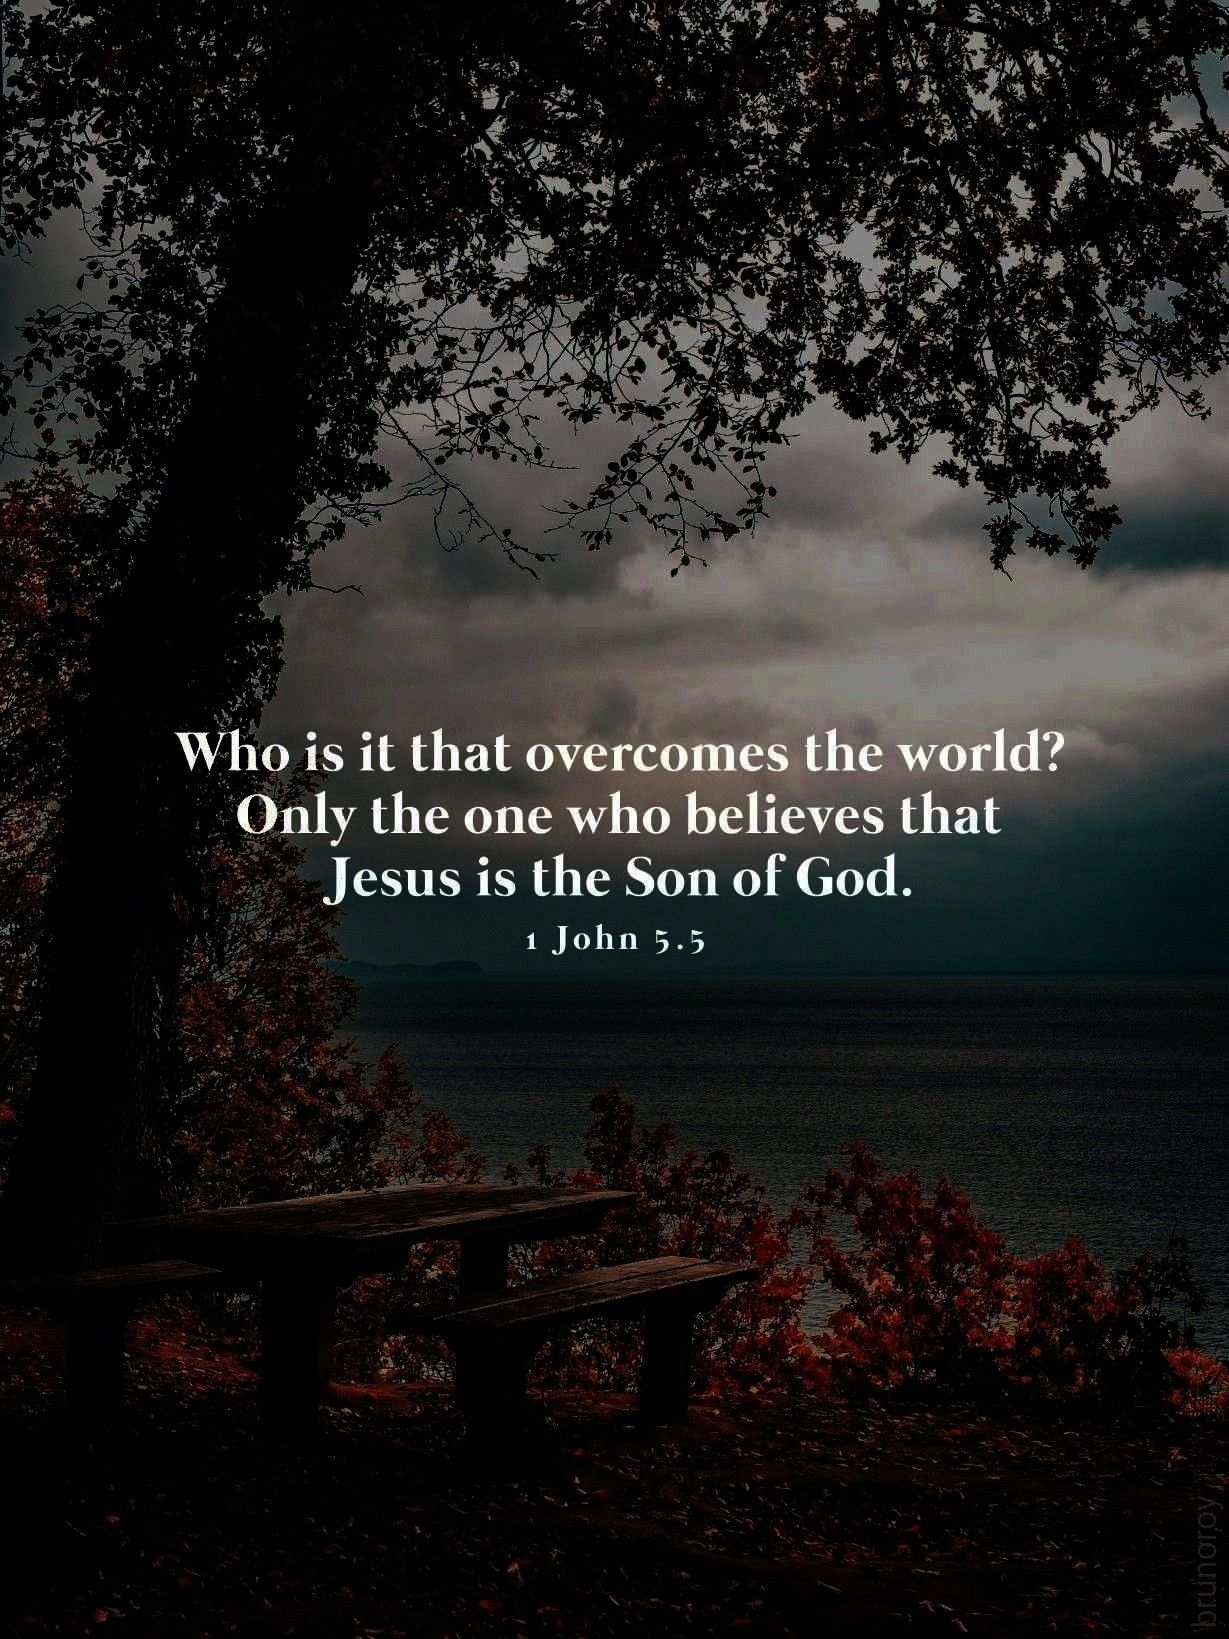 the world Only the one who believes that Jesus is the Son of God 1 John 55Who is it that overcomes the world Only the one who believes that Jesus is the Son of God 1 John...